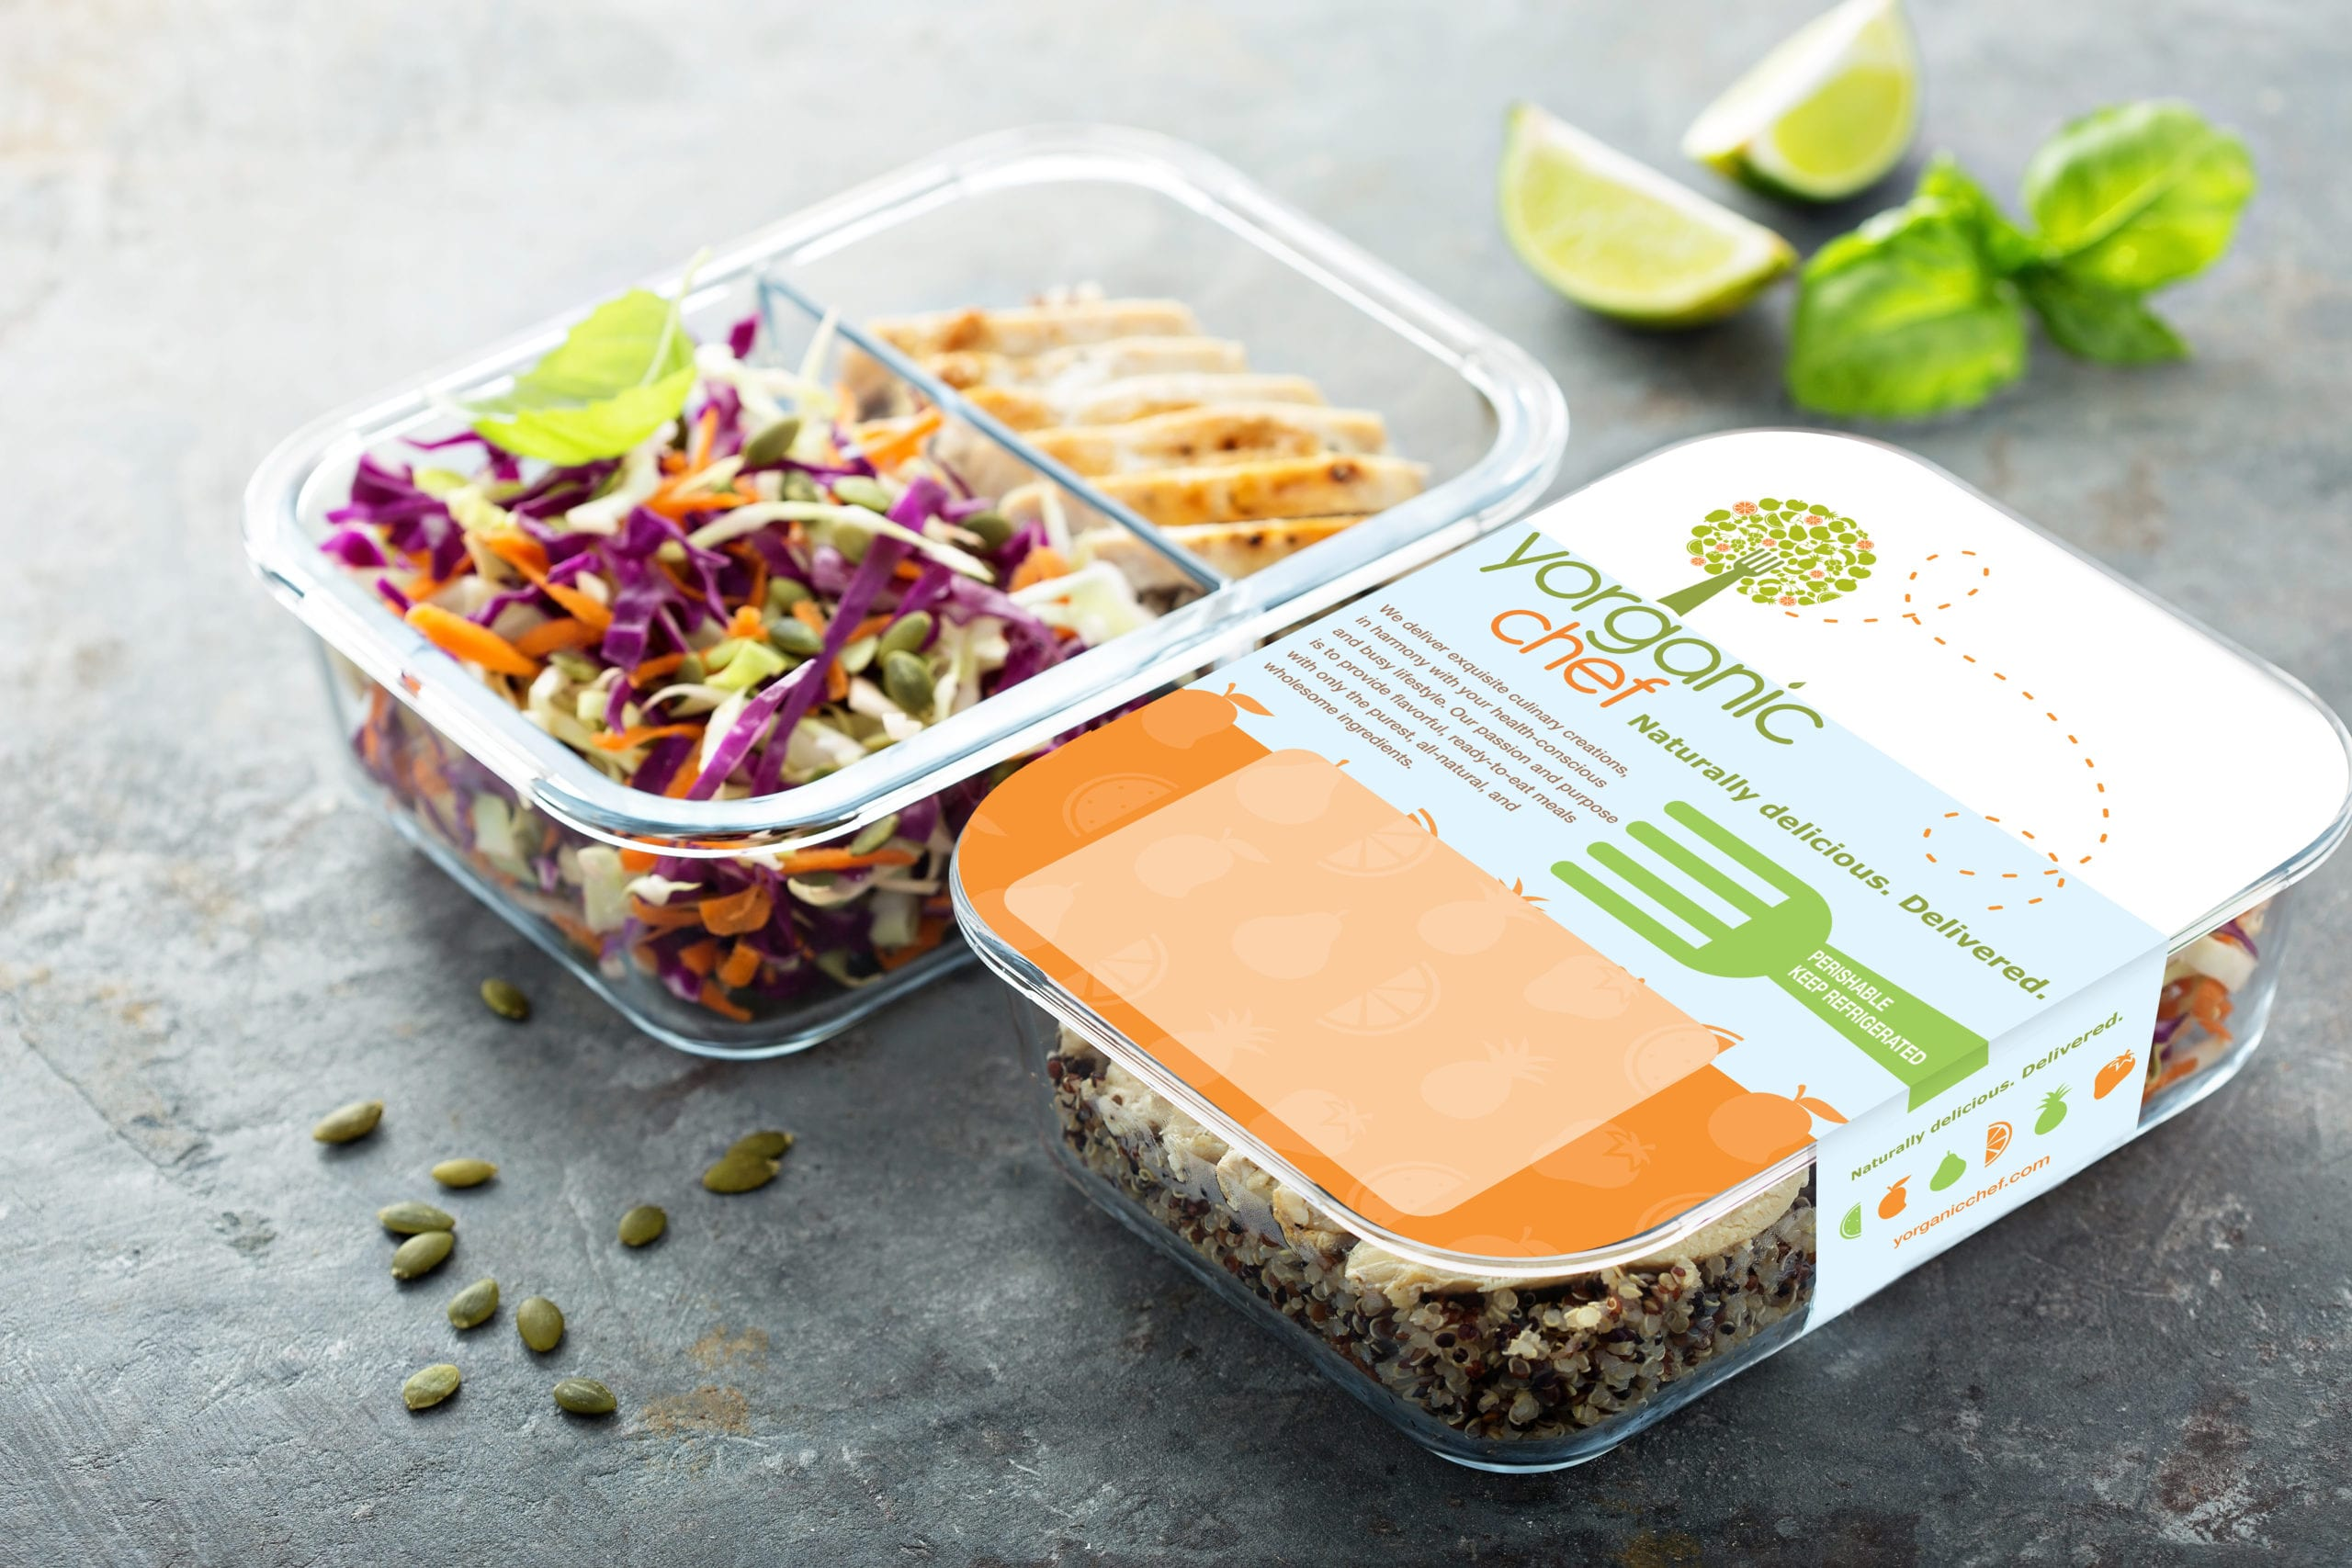 A Canyon Creative work of the packaging of a salad from the Your Organic Chef brand.